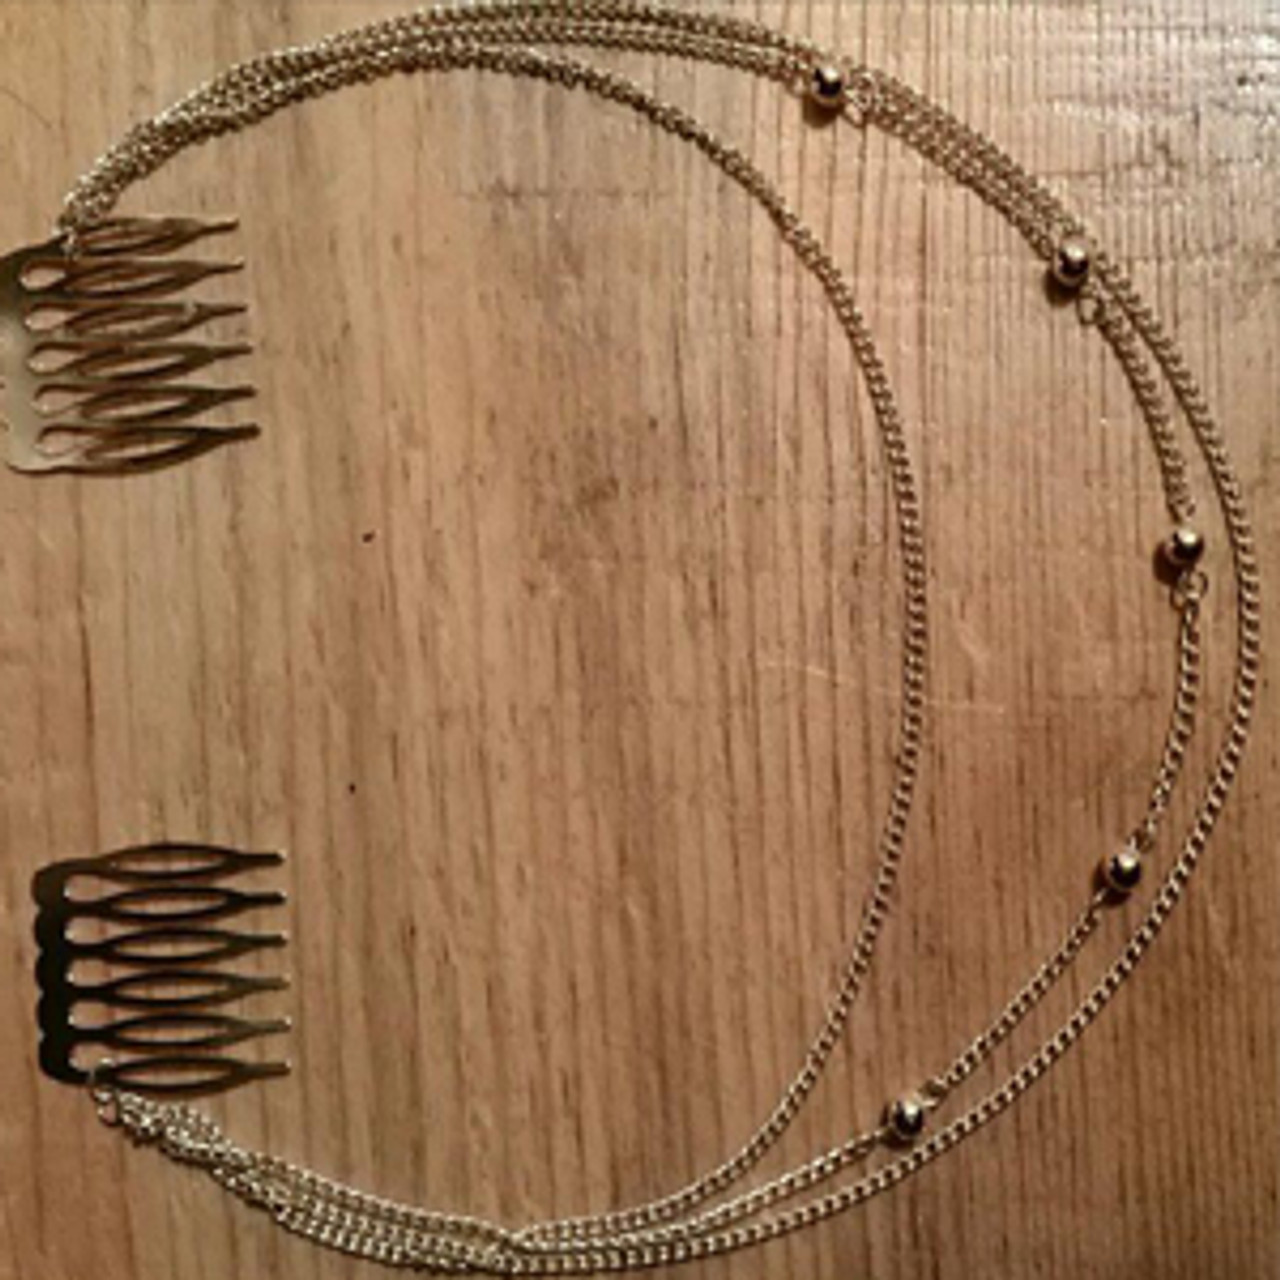 Comb head chains